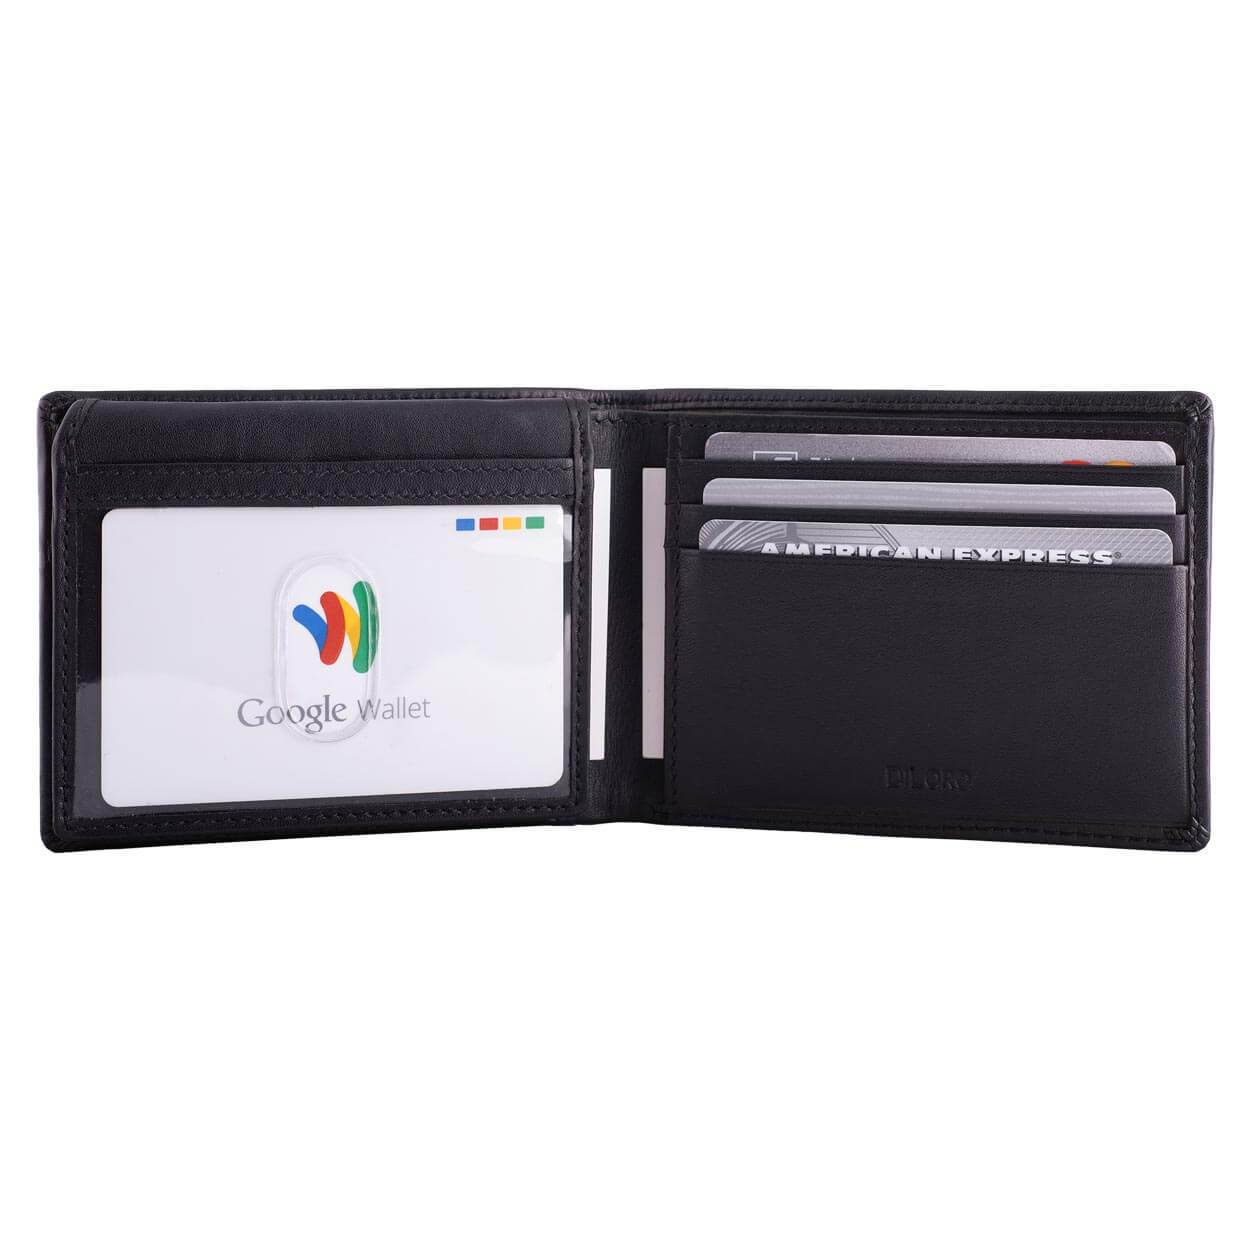 DiLoro Men's Leather Wallet Bifold 2 ID Windows RFID Protection -  Napa Black, Half Open, ID Folded Down